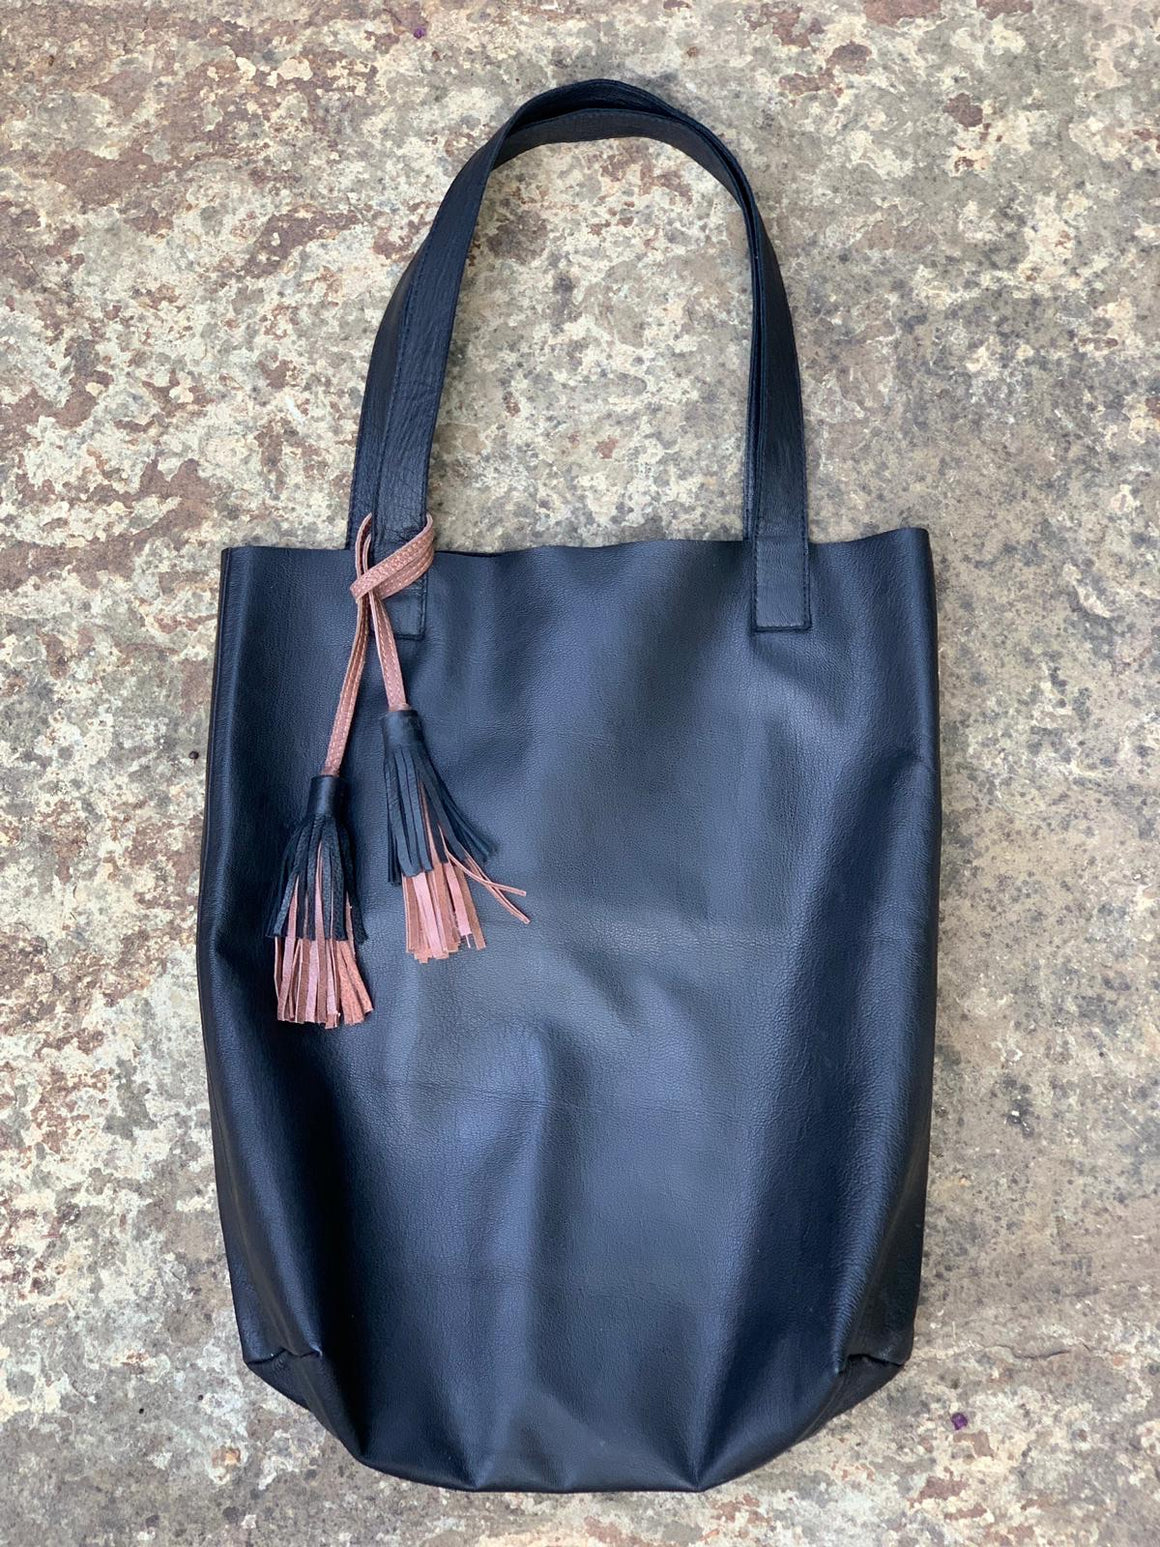 Bali Simple Tote with Tassels: PRE-ORDER (Ships 11/18 - 11/25/19)